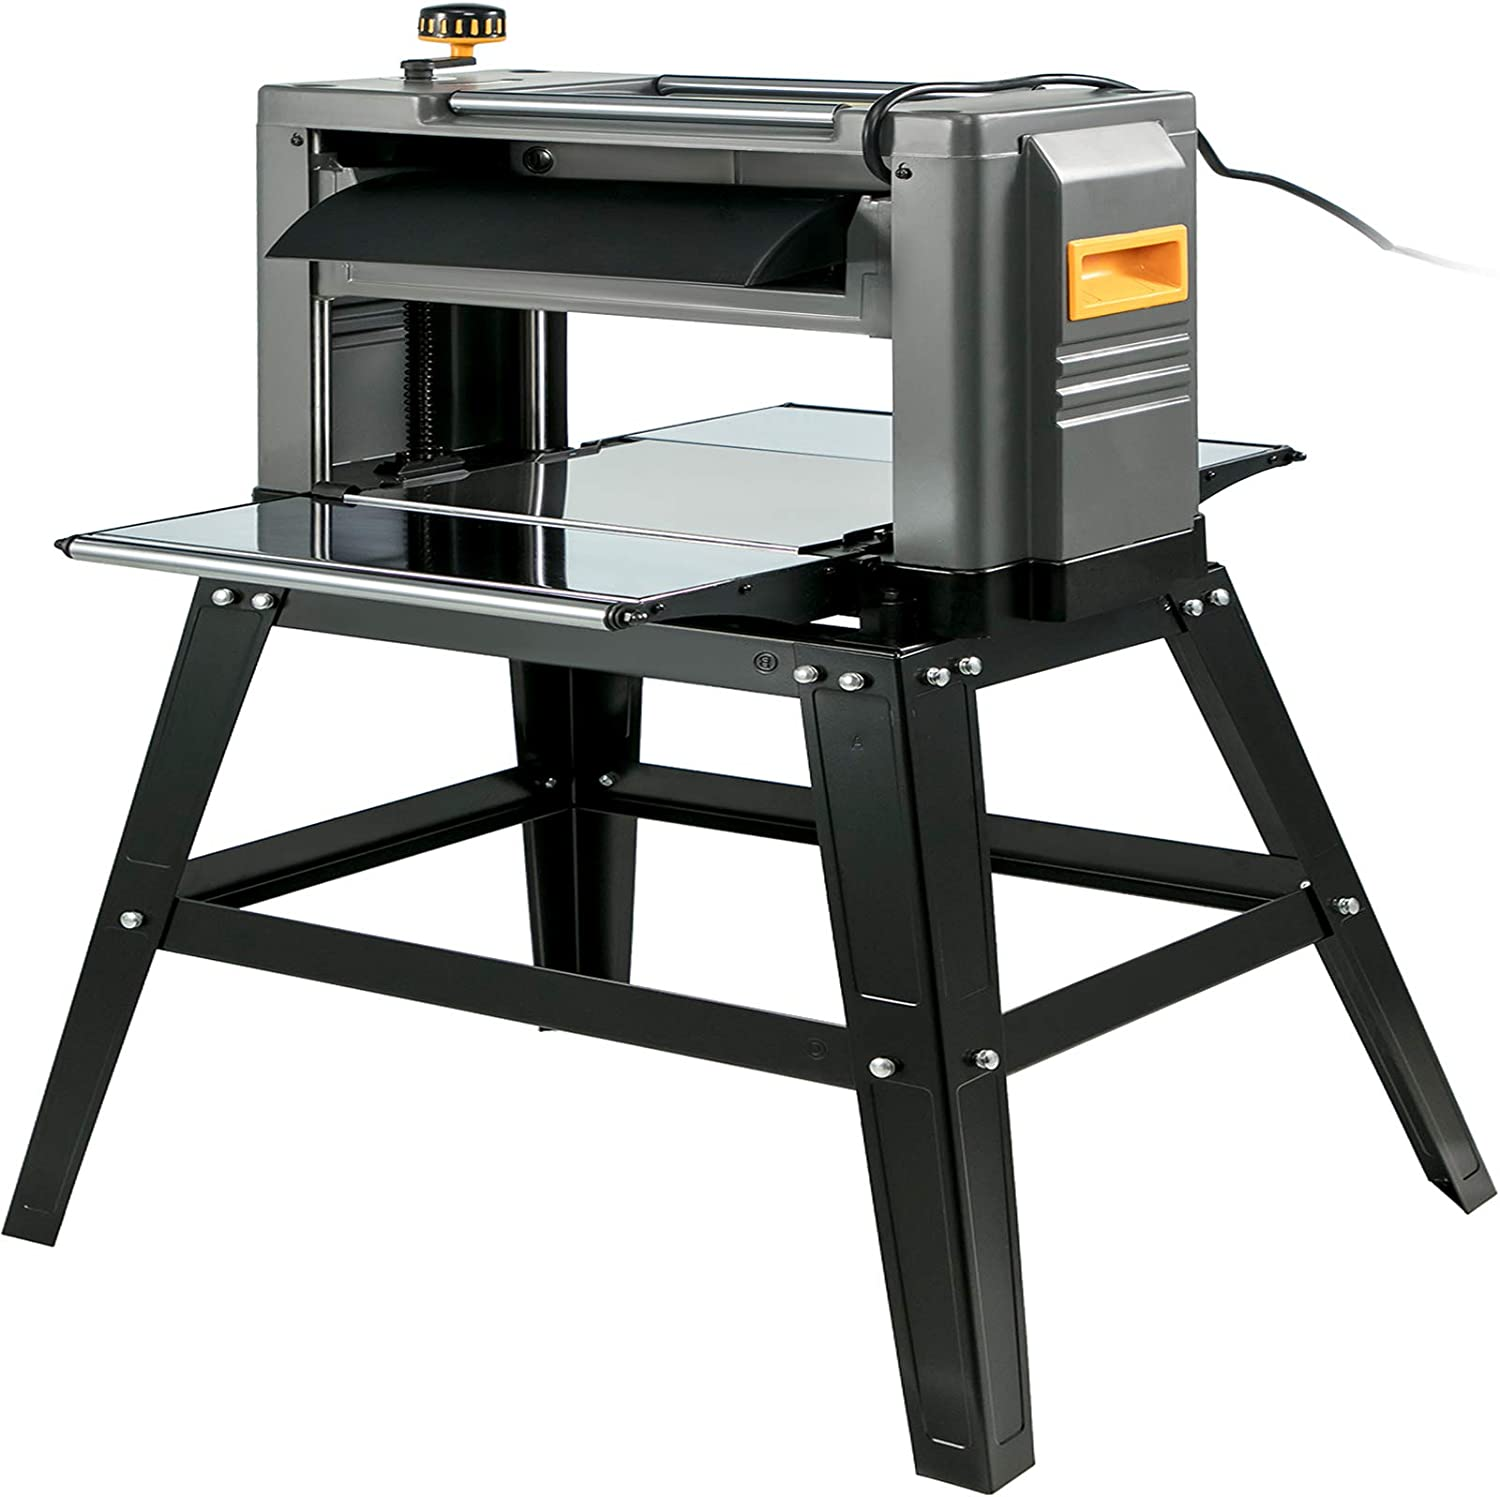 Amazon Com Mophorn Thickness Planer 12 5inch Thickness Planer Woodworking 1500w Double Cutter Benchtop Thickness Planer 15 Amp With Stand Heavy Duty Dust Exhaust For Woodworking Home Improvement